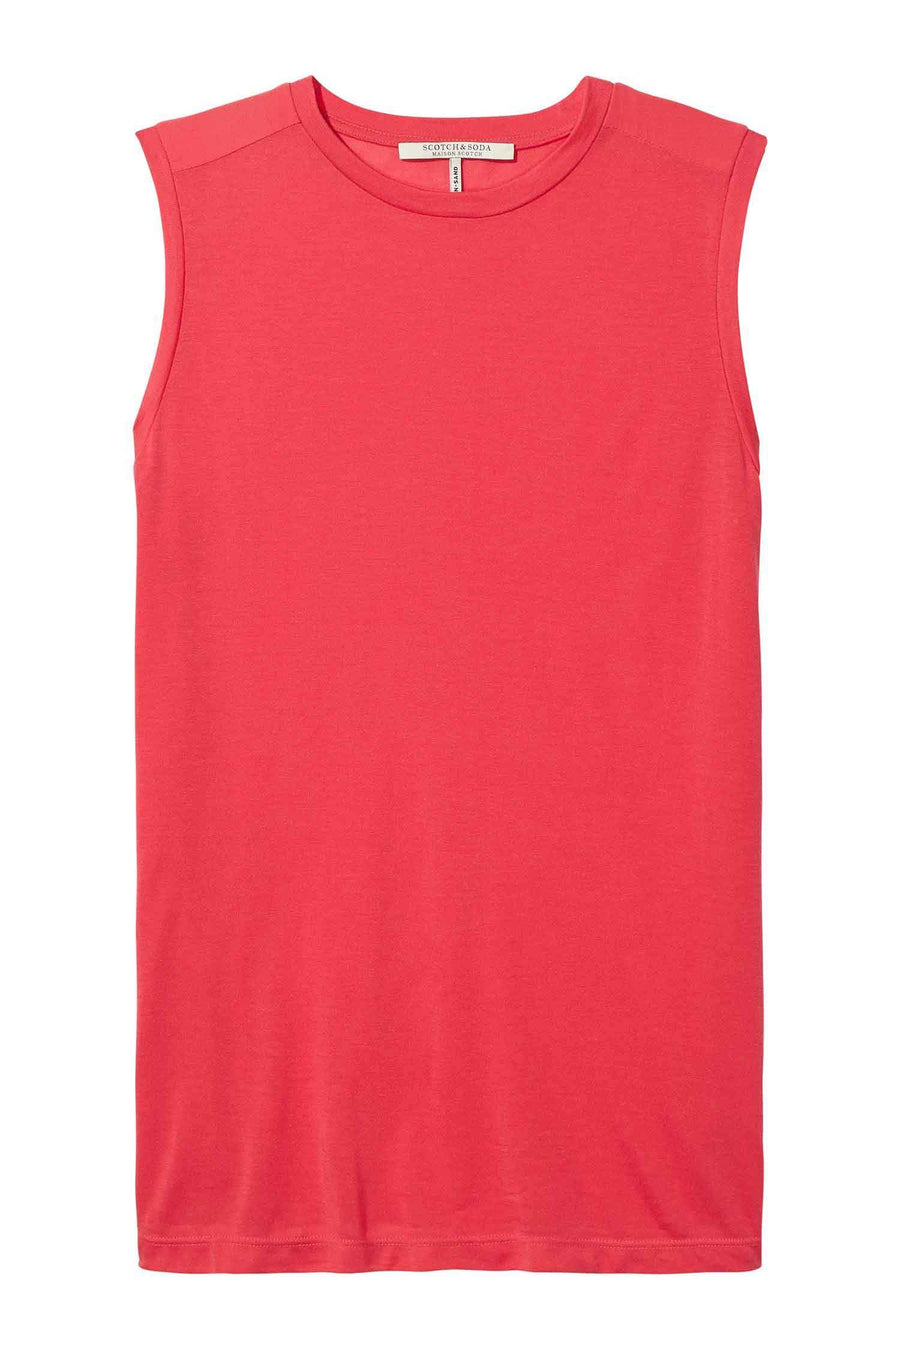 Soft Jersey Top In Punch